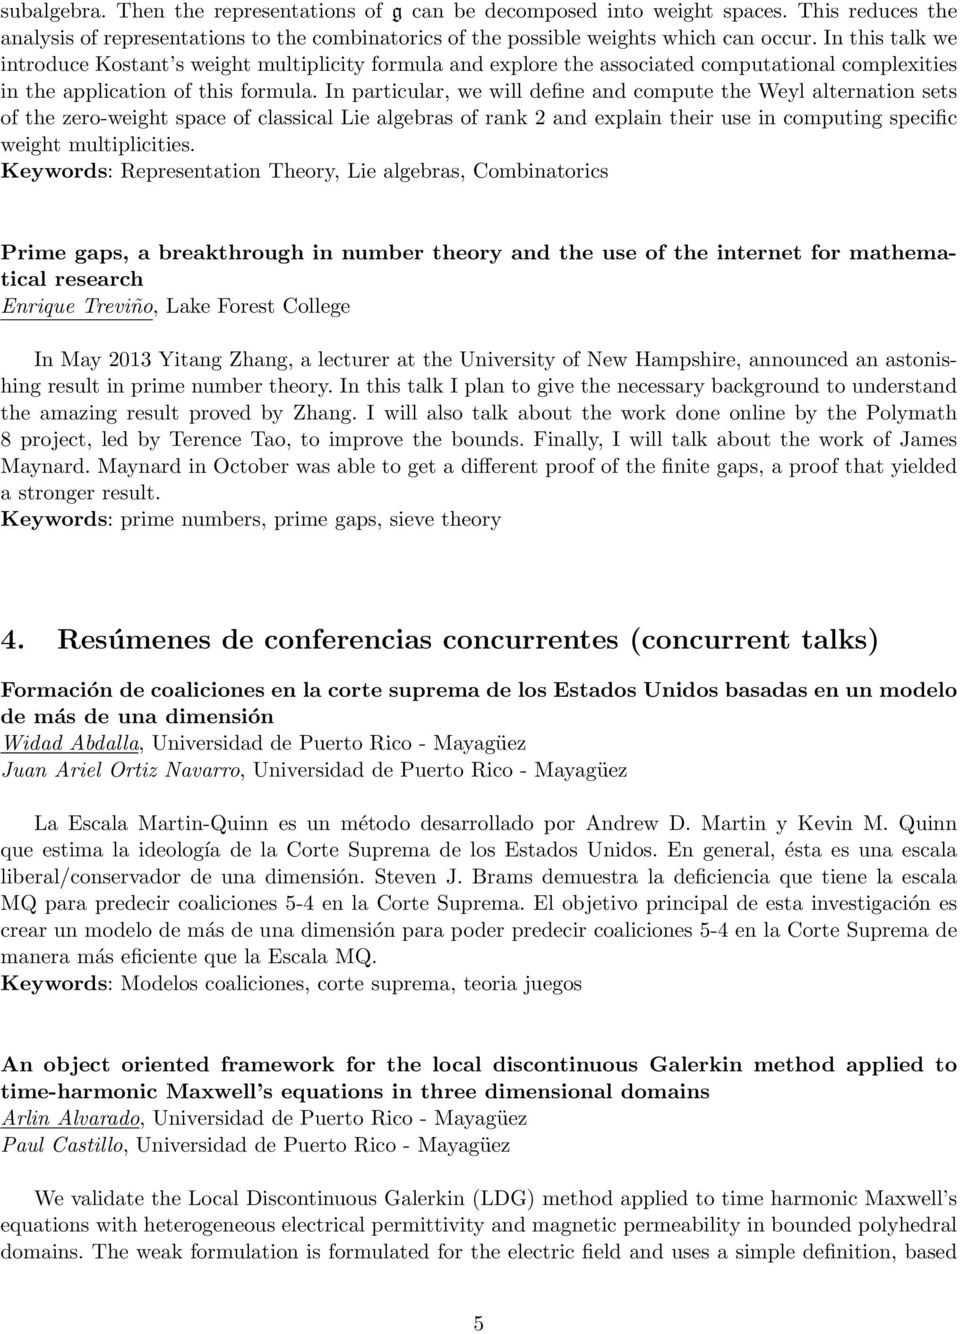 In particular, we will define and compute the Weyl alternation sets of the zero-weight space of classical Lie algebras of rank 2 and explain their use in computing specific weight multiplicities.